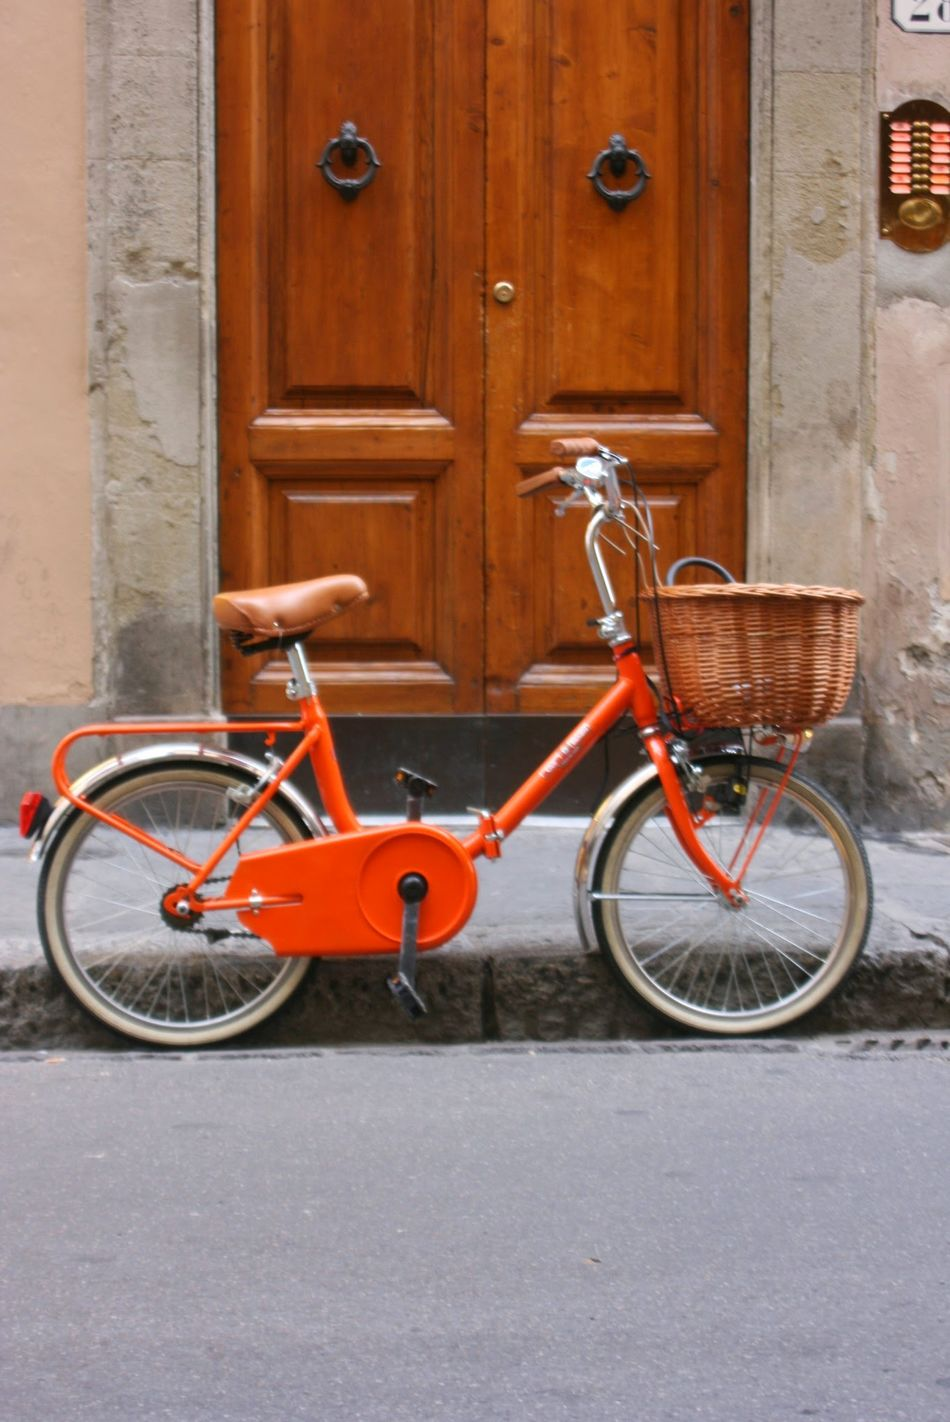 Bicycle Door Transportation Cycling Street Mode Of Transport Travel Outdoors Pedal Vacations City Orange Orange Color Bike Italia Italy Travel Photography Travellover Pupparazzi